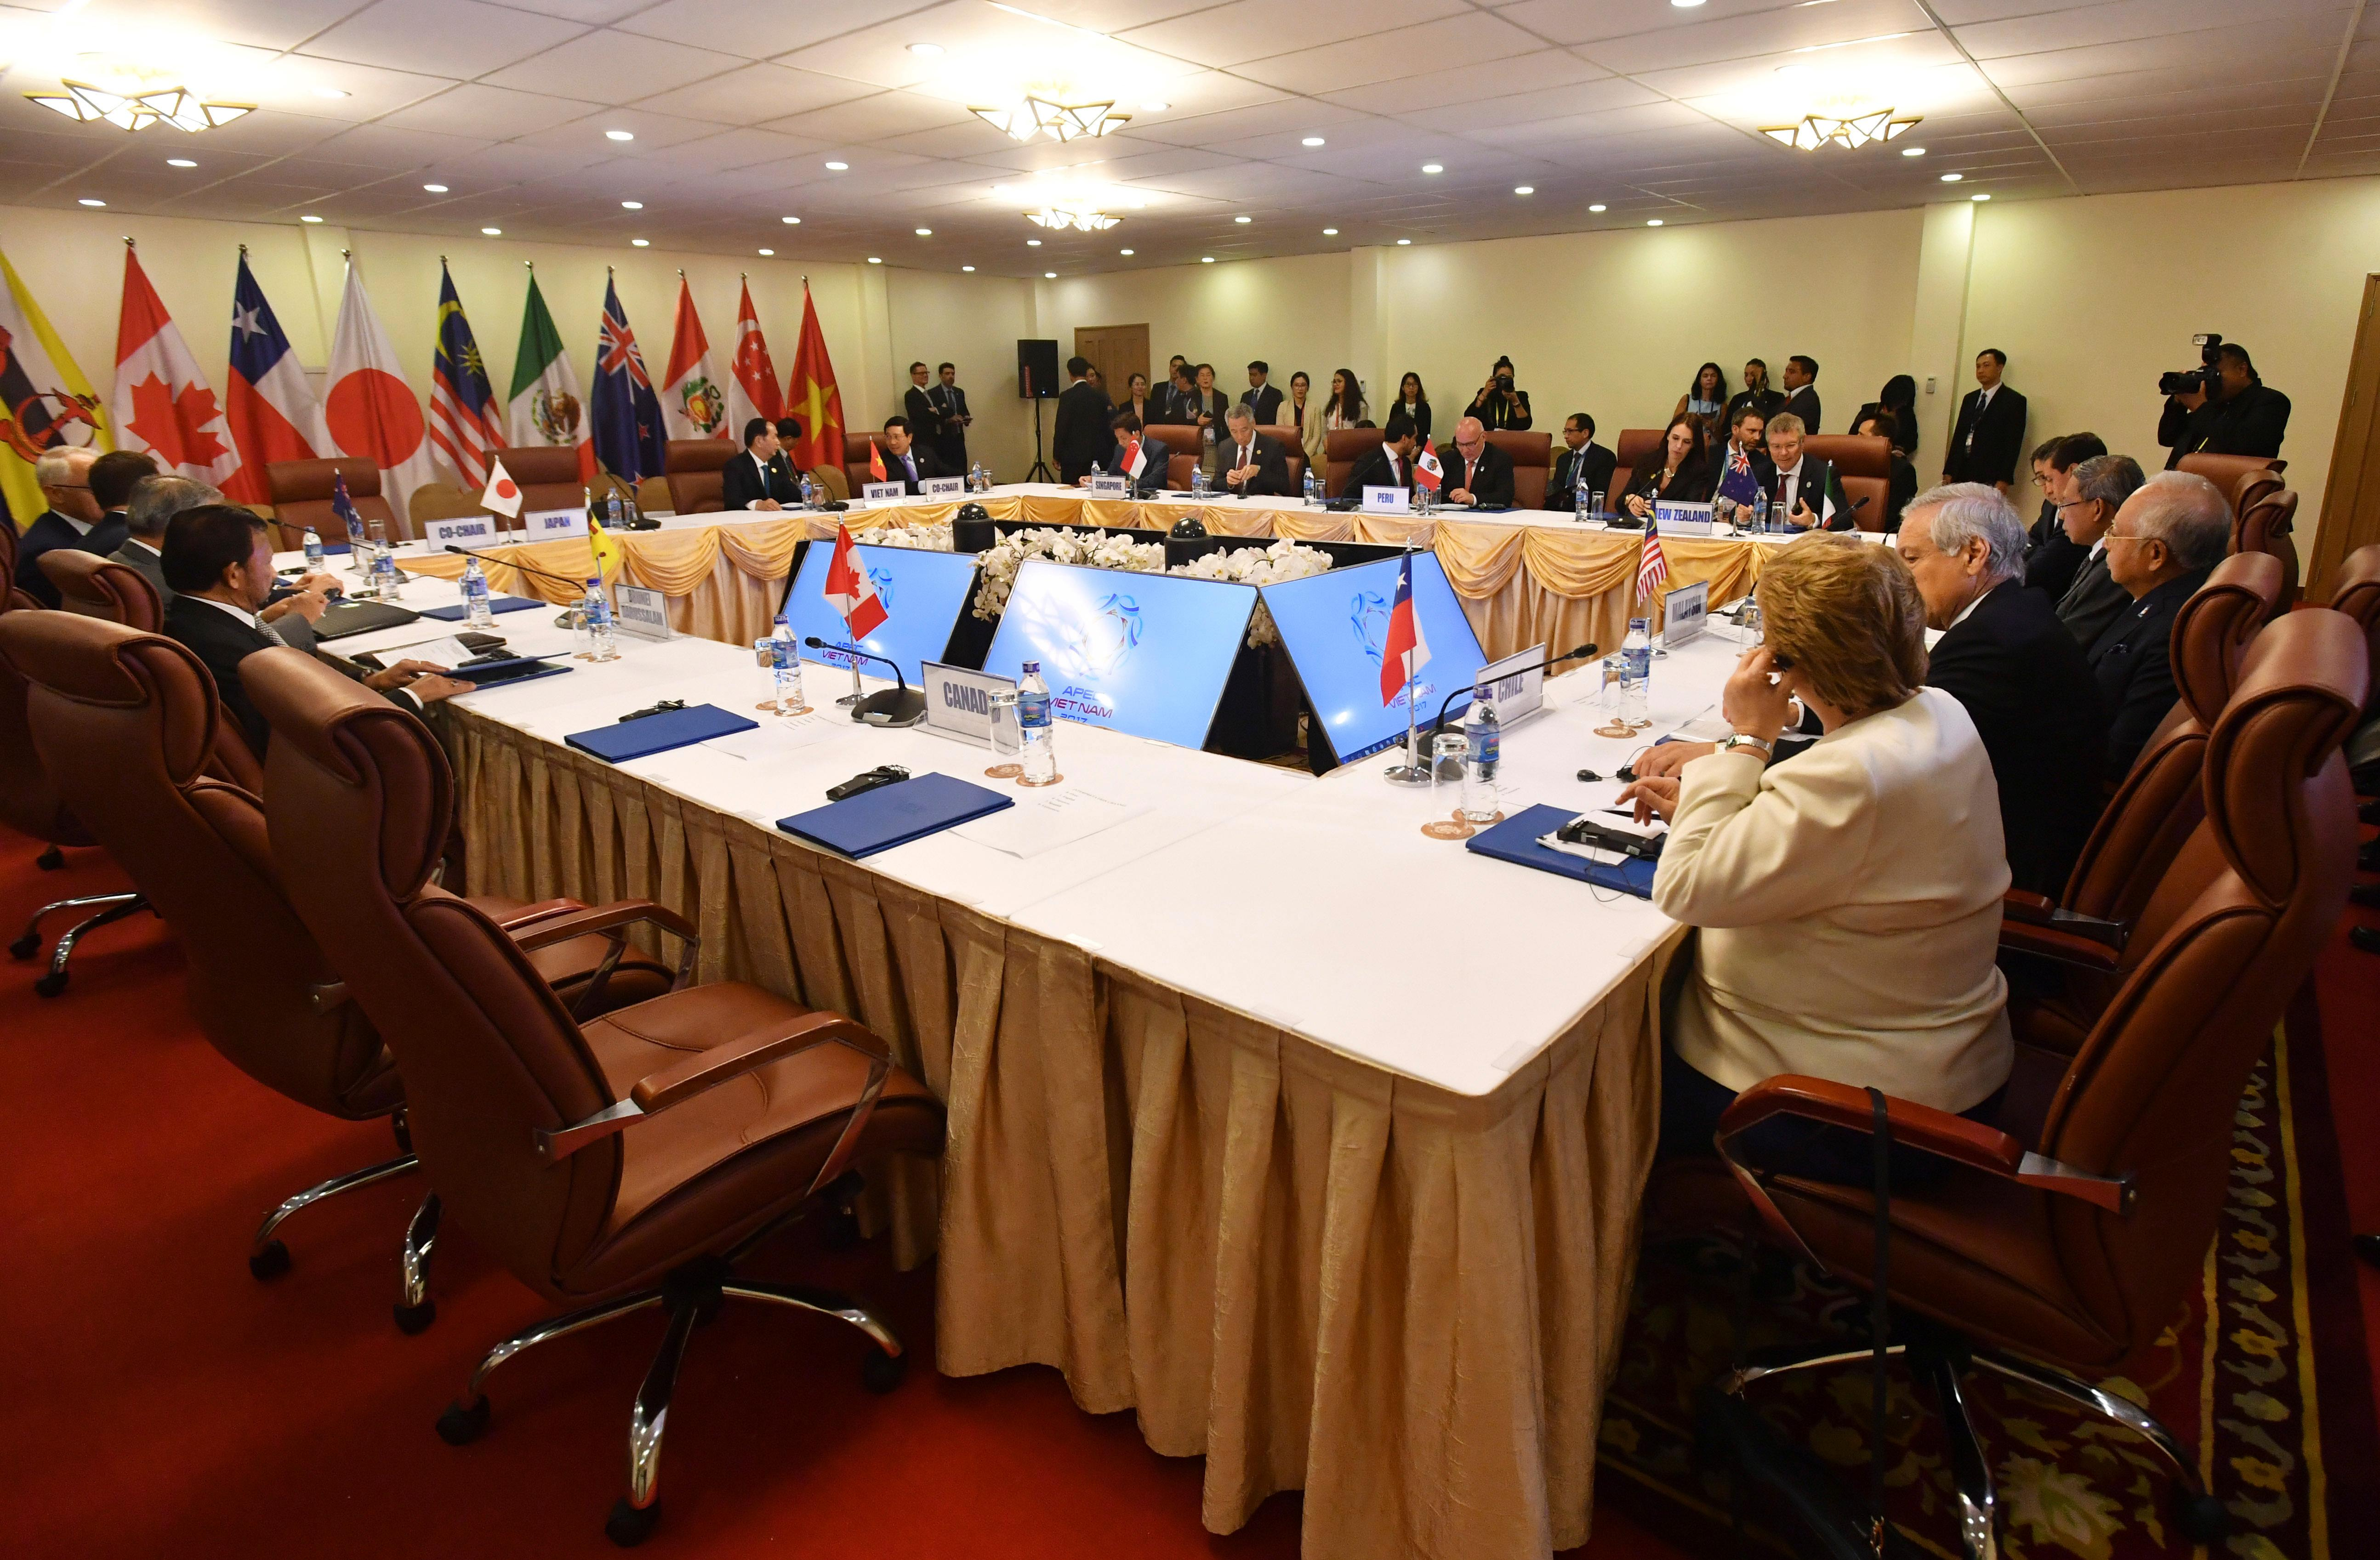 The empty seat, foreground, for Canada's Prime Minister Justin Trudeau, is seen during a meeting of the Trans-Pacific Partnership (TPP) on the sidelines of the Asia-Pacific Economic Cooperation (APEC) summit in Danang, Vietnam, Friday, Friday, Nov. 10, 2017. (Mick Tsikas/AAP Image via AP)